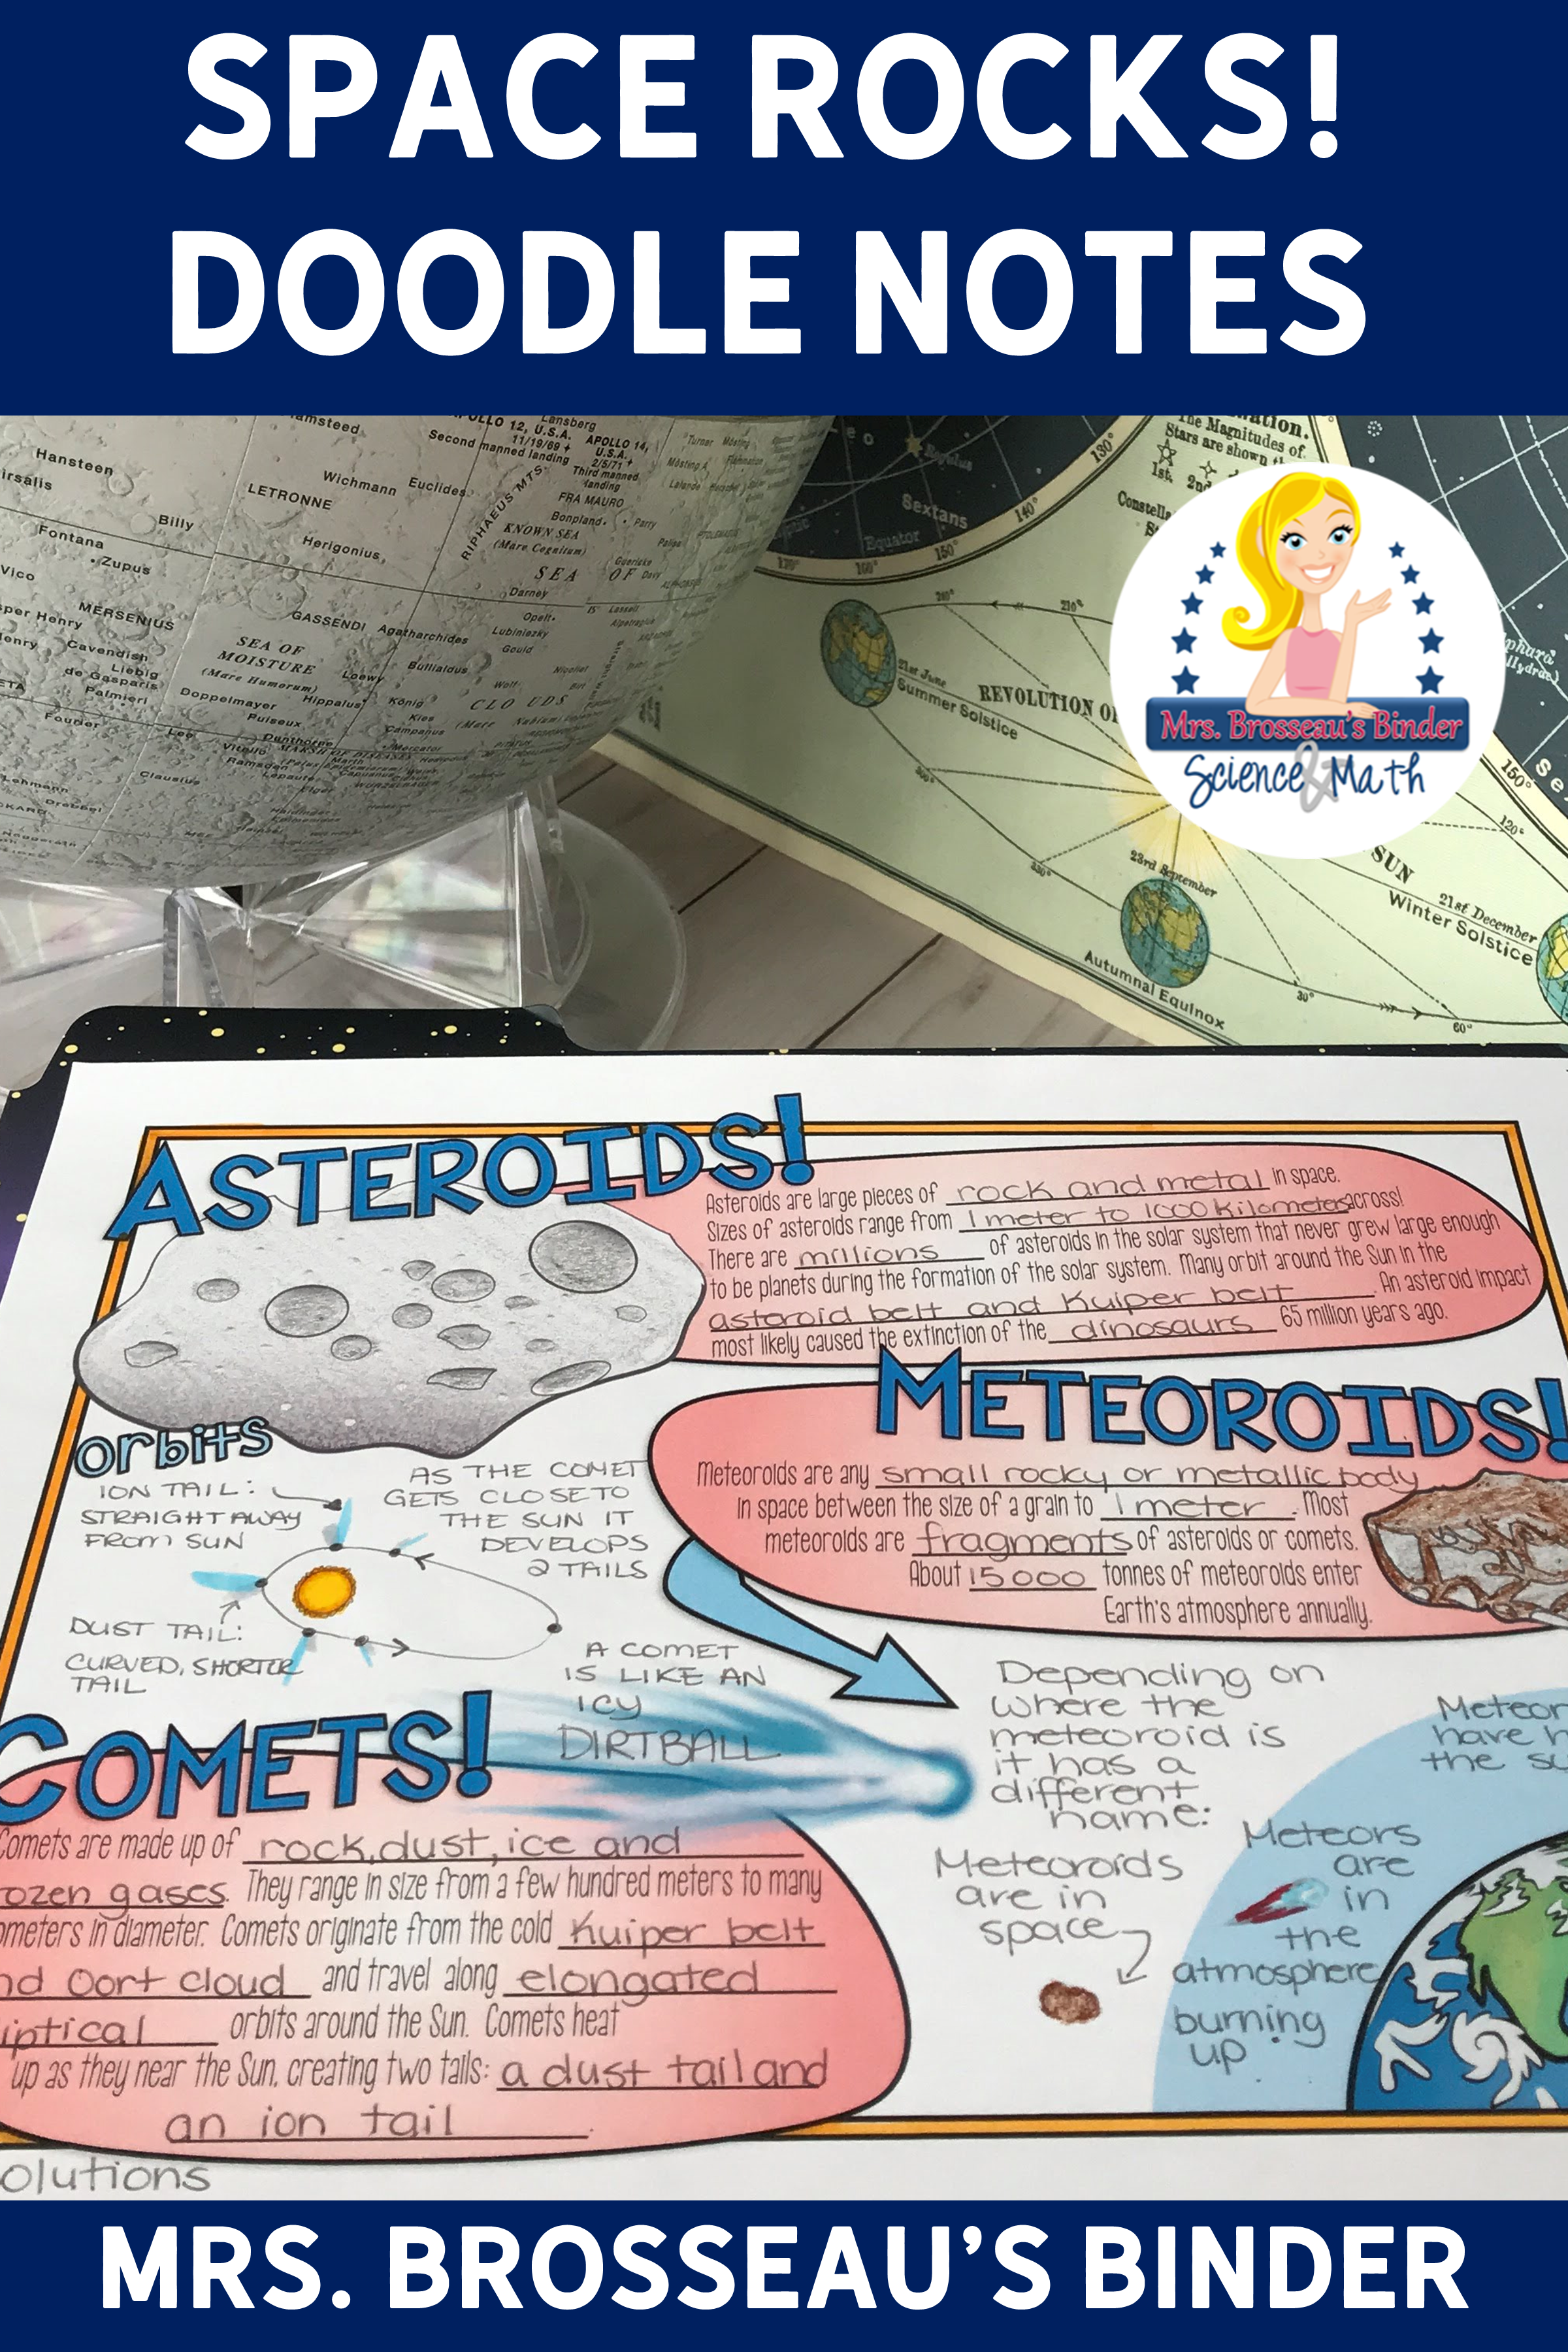 Asteroids Meteoroids And Comets